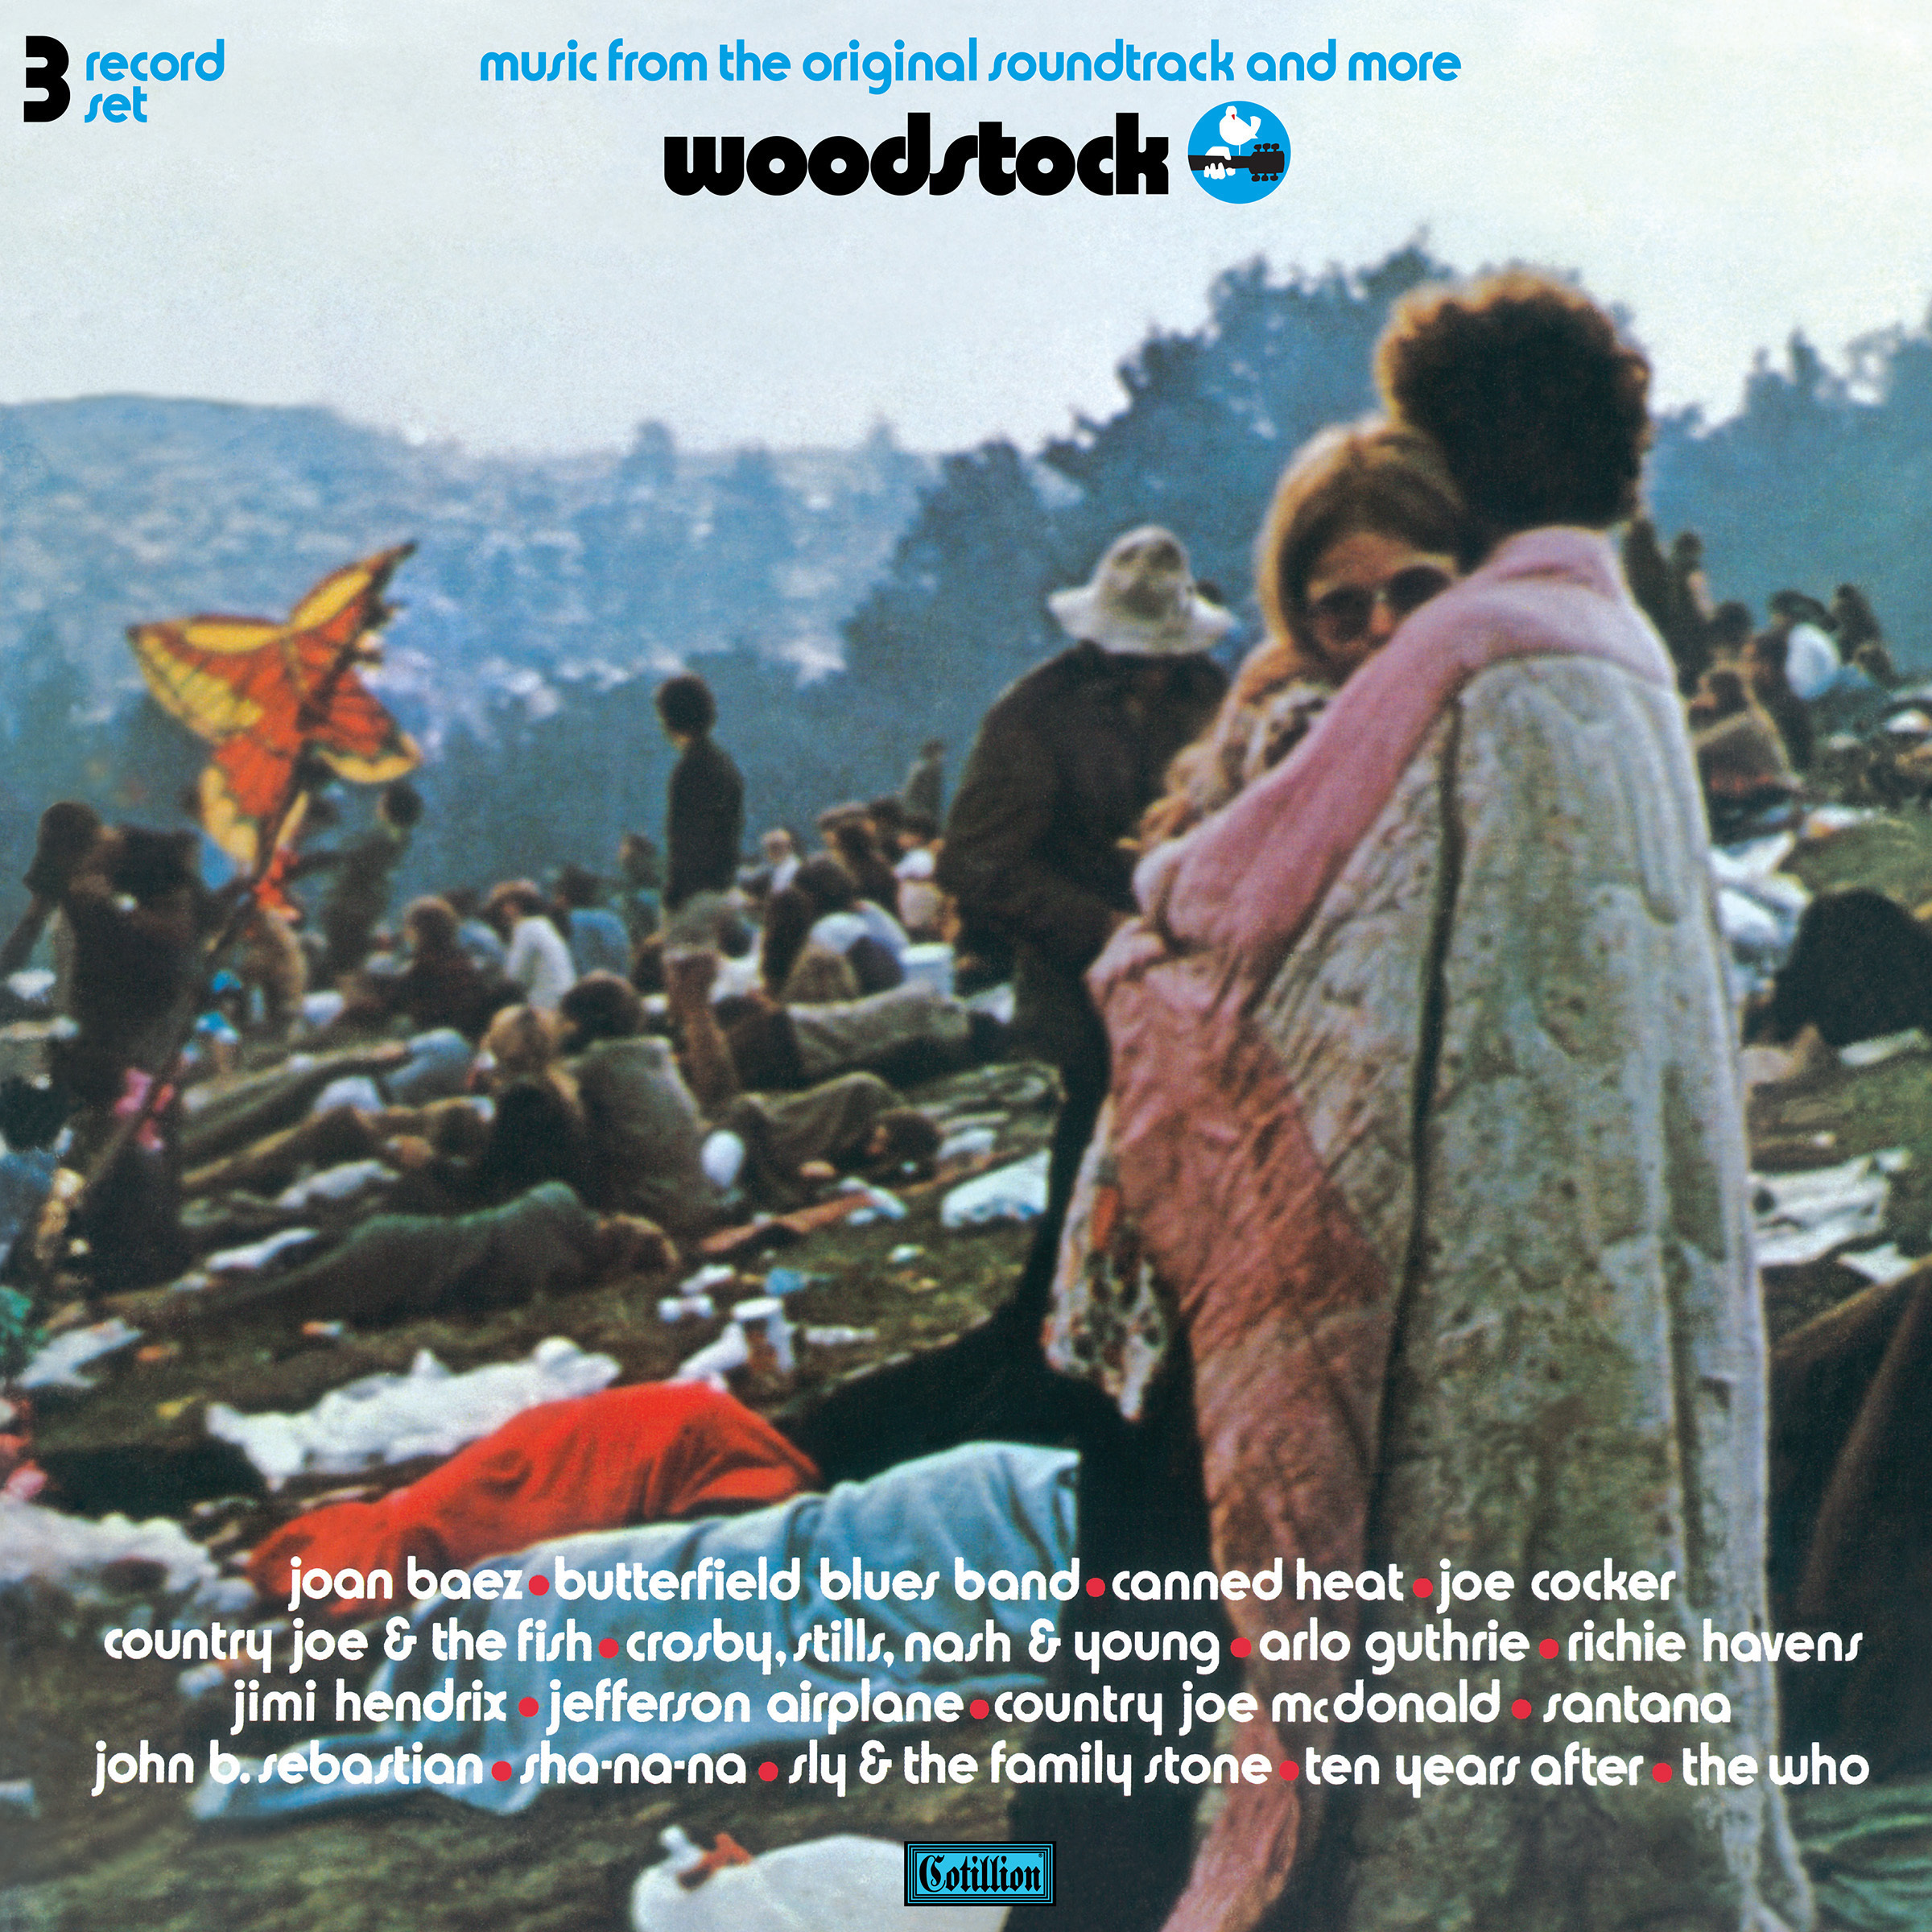 The album cover to the original soundtrack of Woodstock.